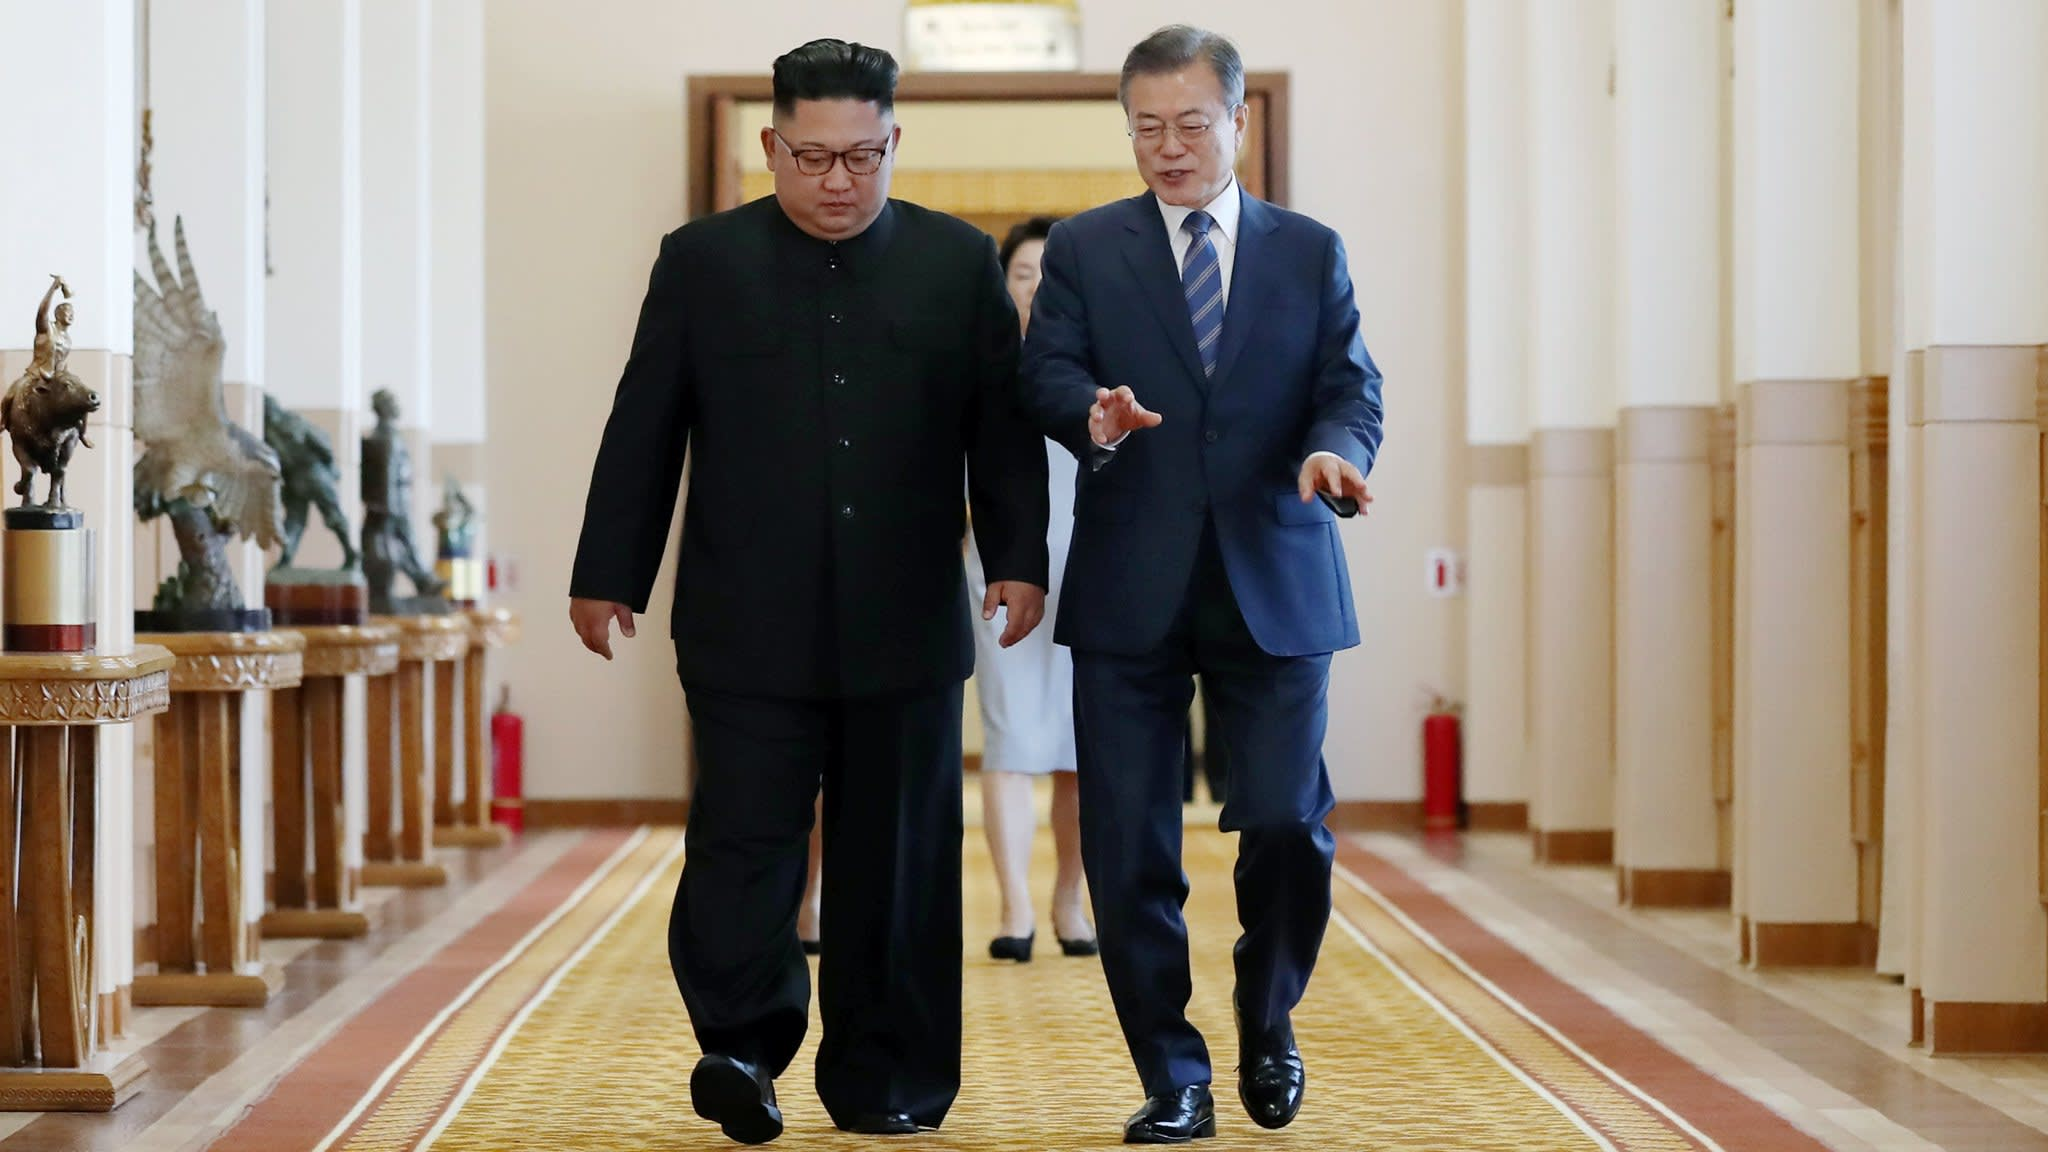 US and South Korea's divergence over North puts 70-year alliance at risk